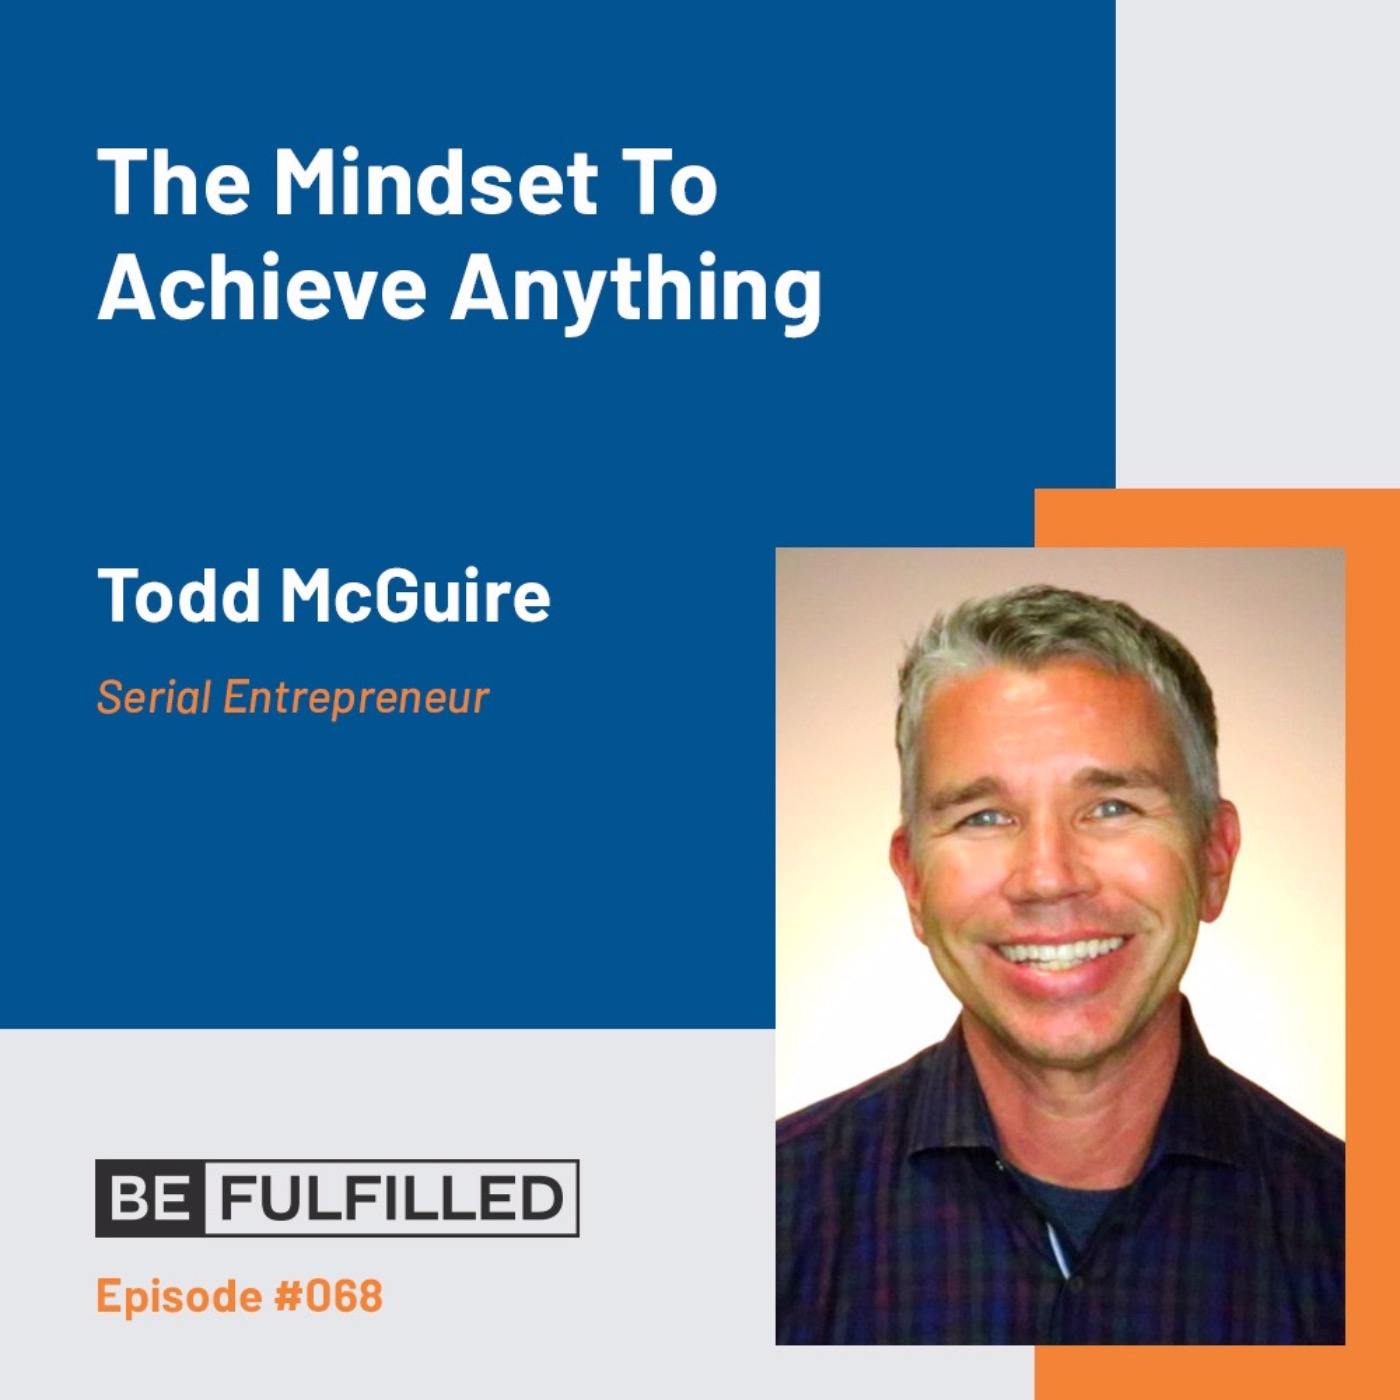 The Mindset To Achieve Anything - Todd McGuire